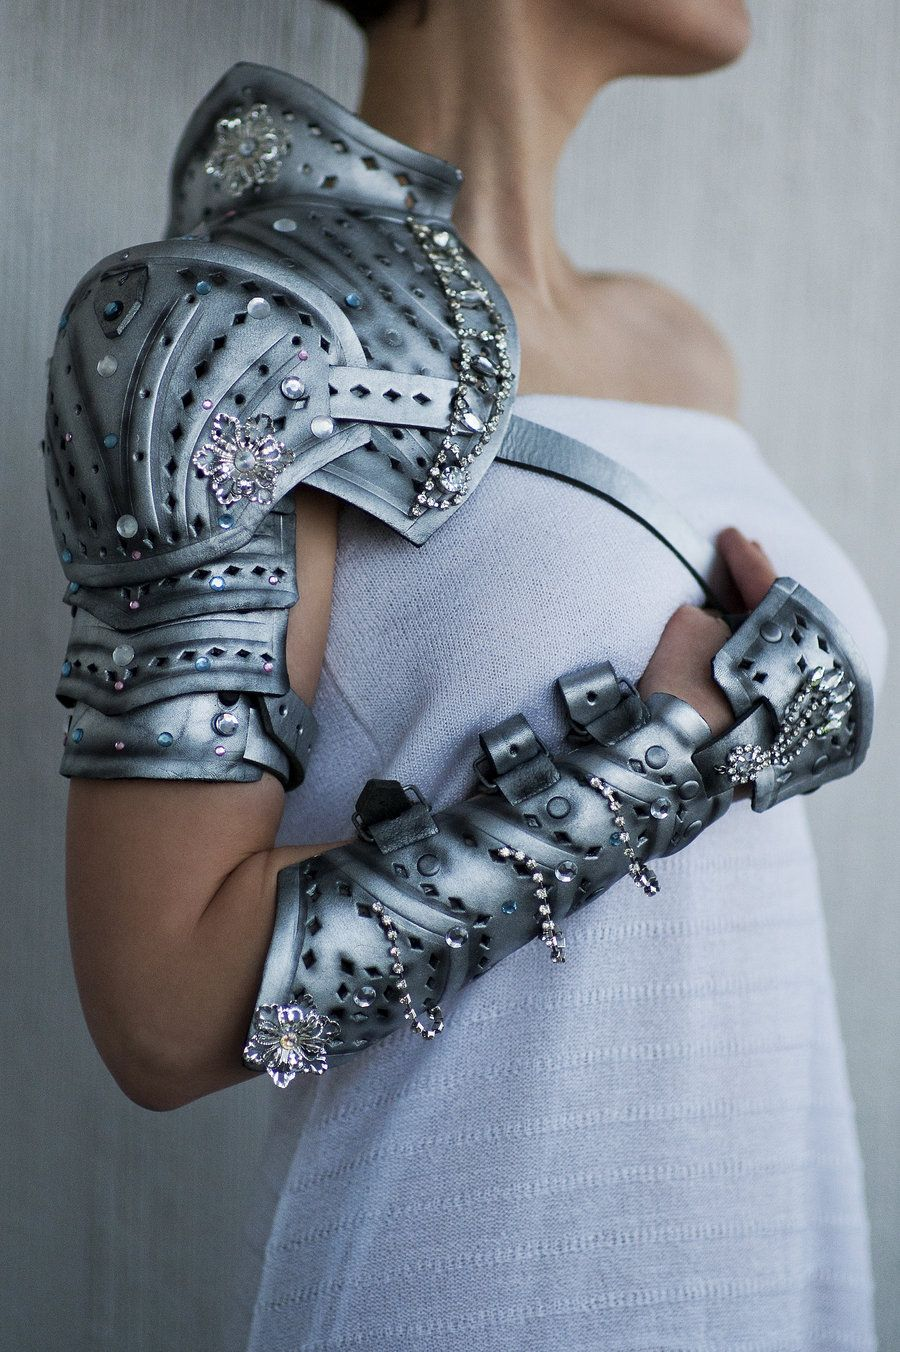 Leather + Jewellery = Shining Fashion Armour!